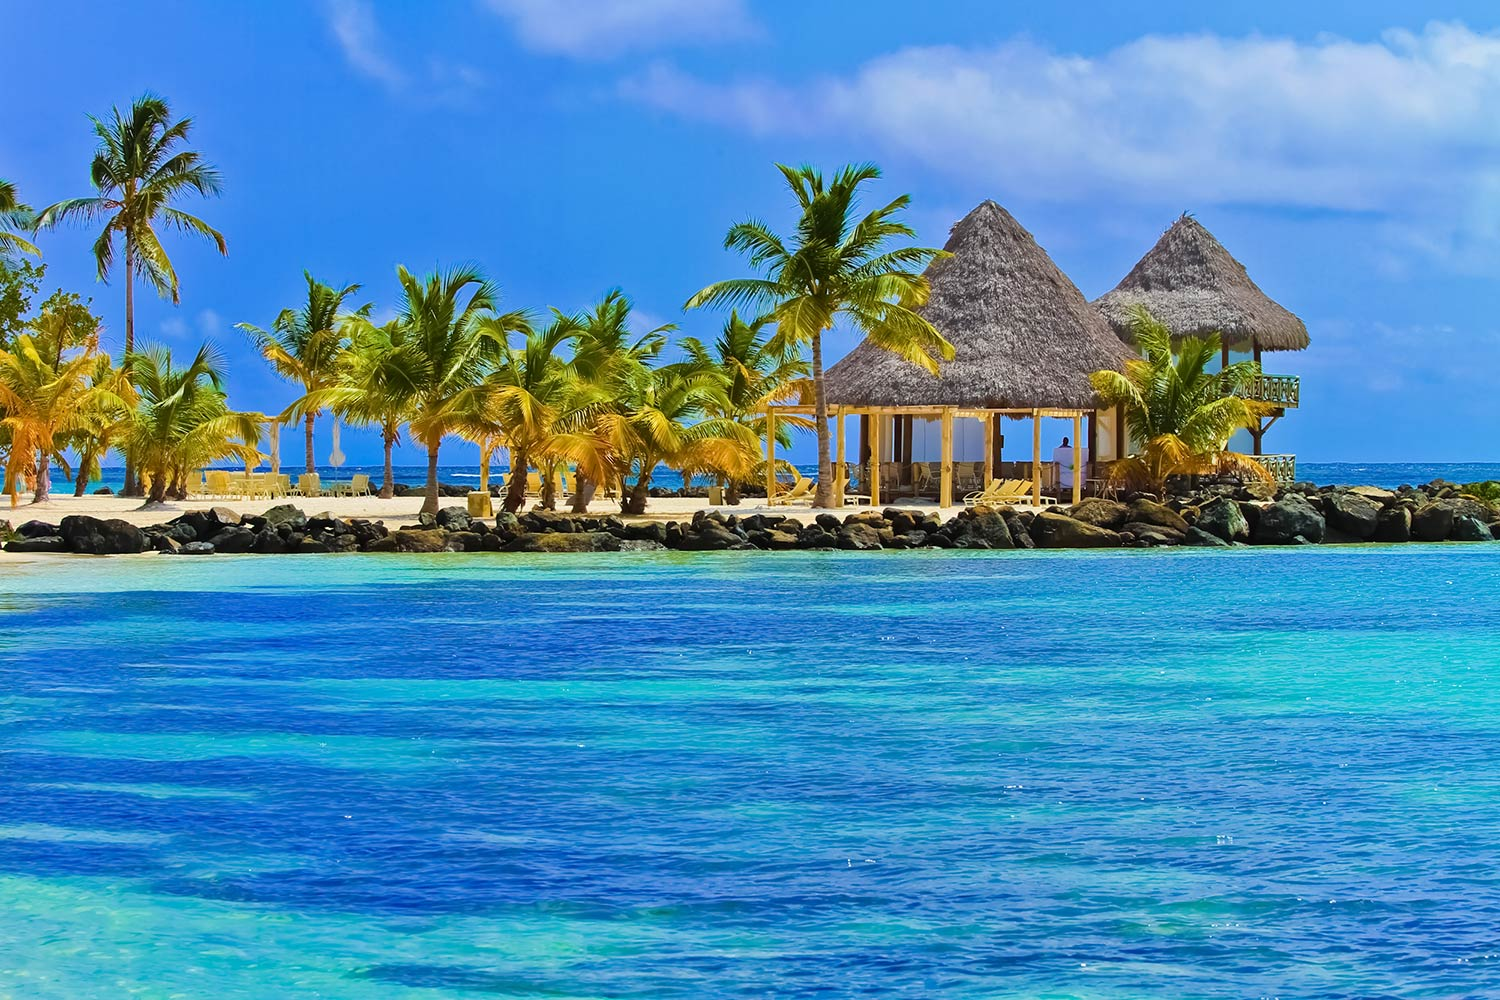 Thatched hut surrounded by palm trees next to bright blue water in Punta Cana